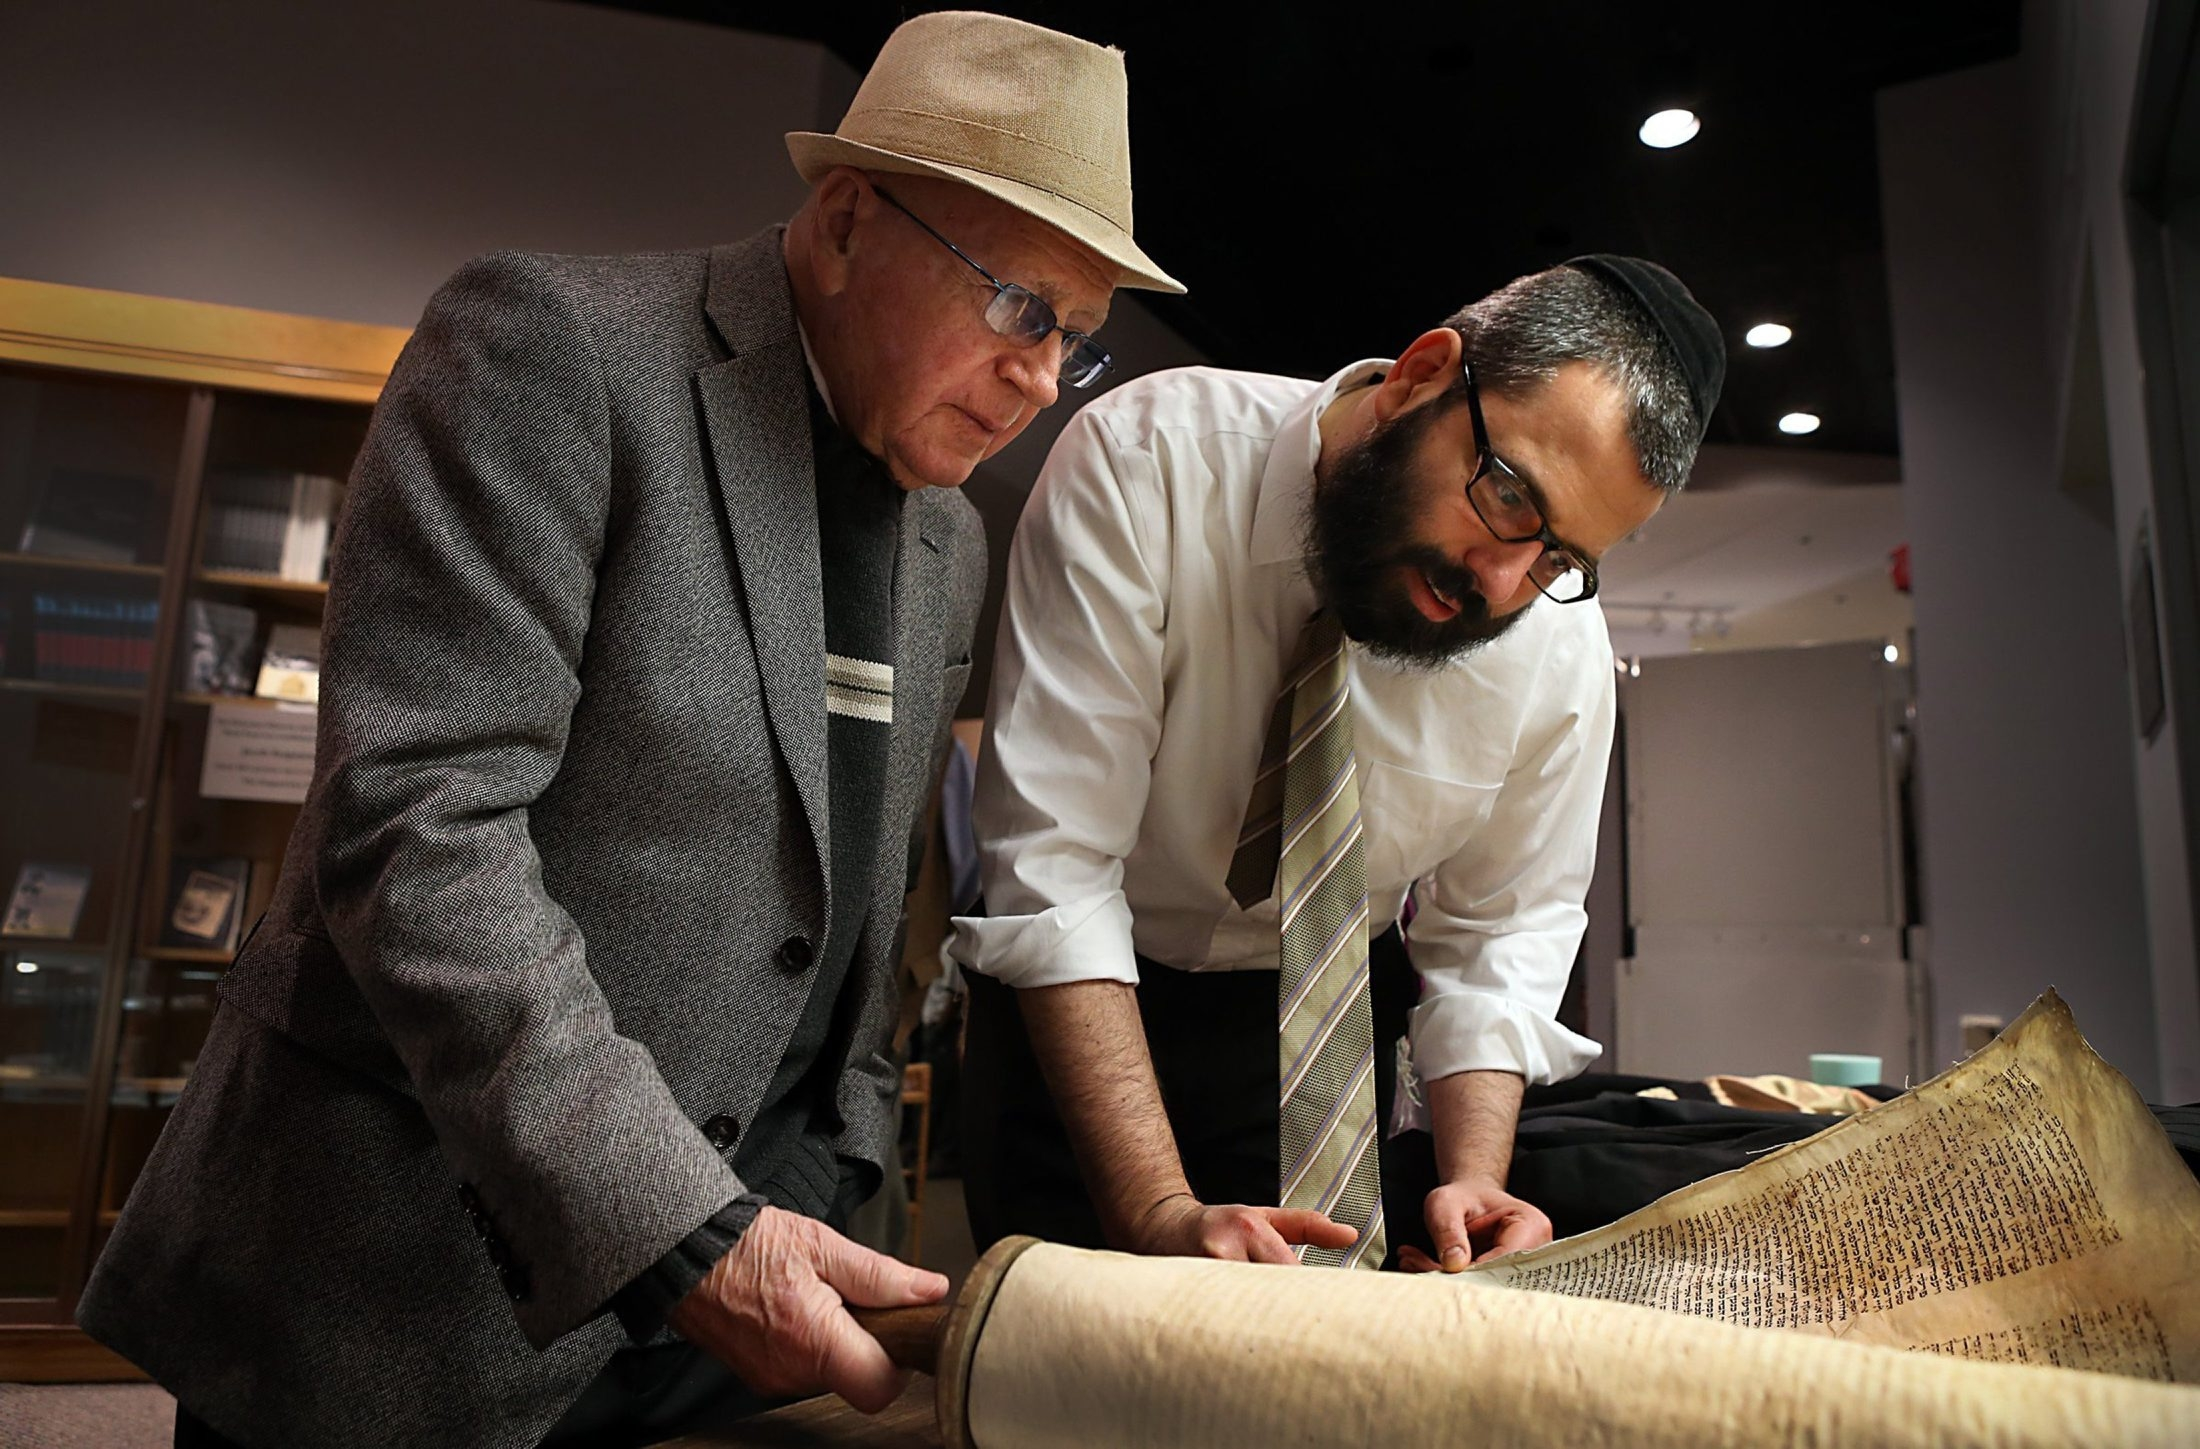 Philip Bialowitz, 84, left, survivor of the Sobibor death camp in Poland during World War II, and Rabbi Hershey Novak look over a late 18th/early 19th century Torah scroll from his homeland of Izbica, Poland during a visit to the Holocaust Museum and Learning Center, Feb. 28, 2014, in St. Louis. (Robert Cohen/St. Louis Post-Dispatch/MCT)